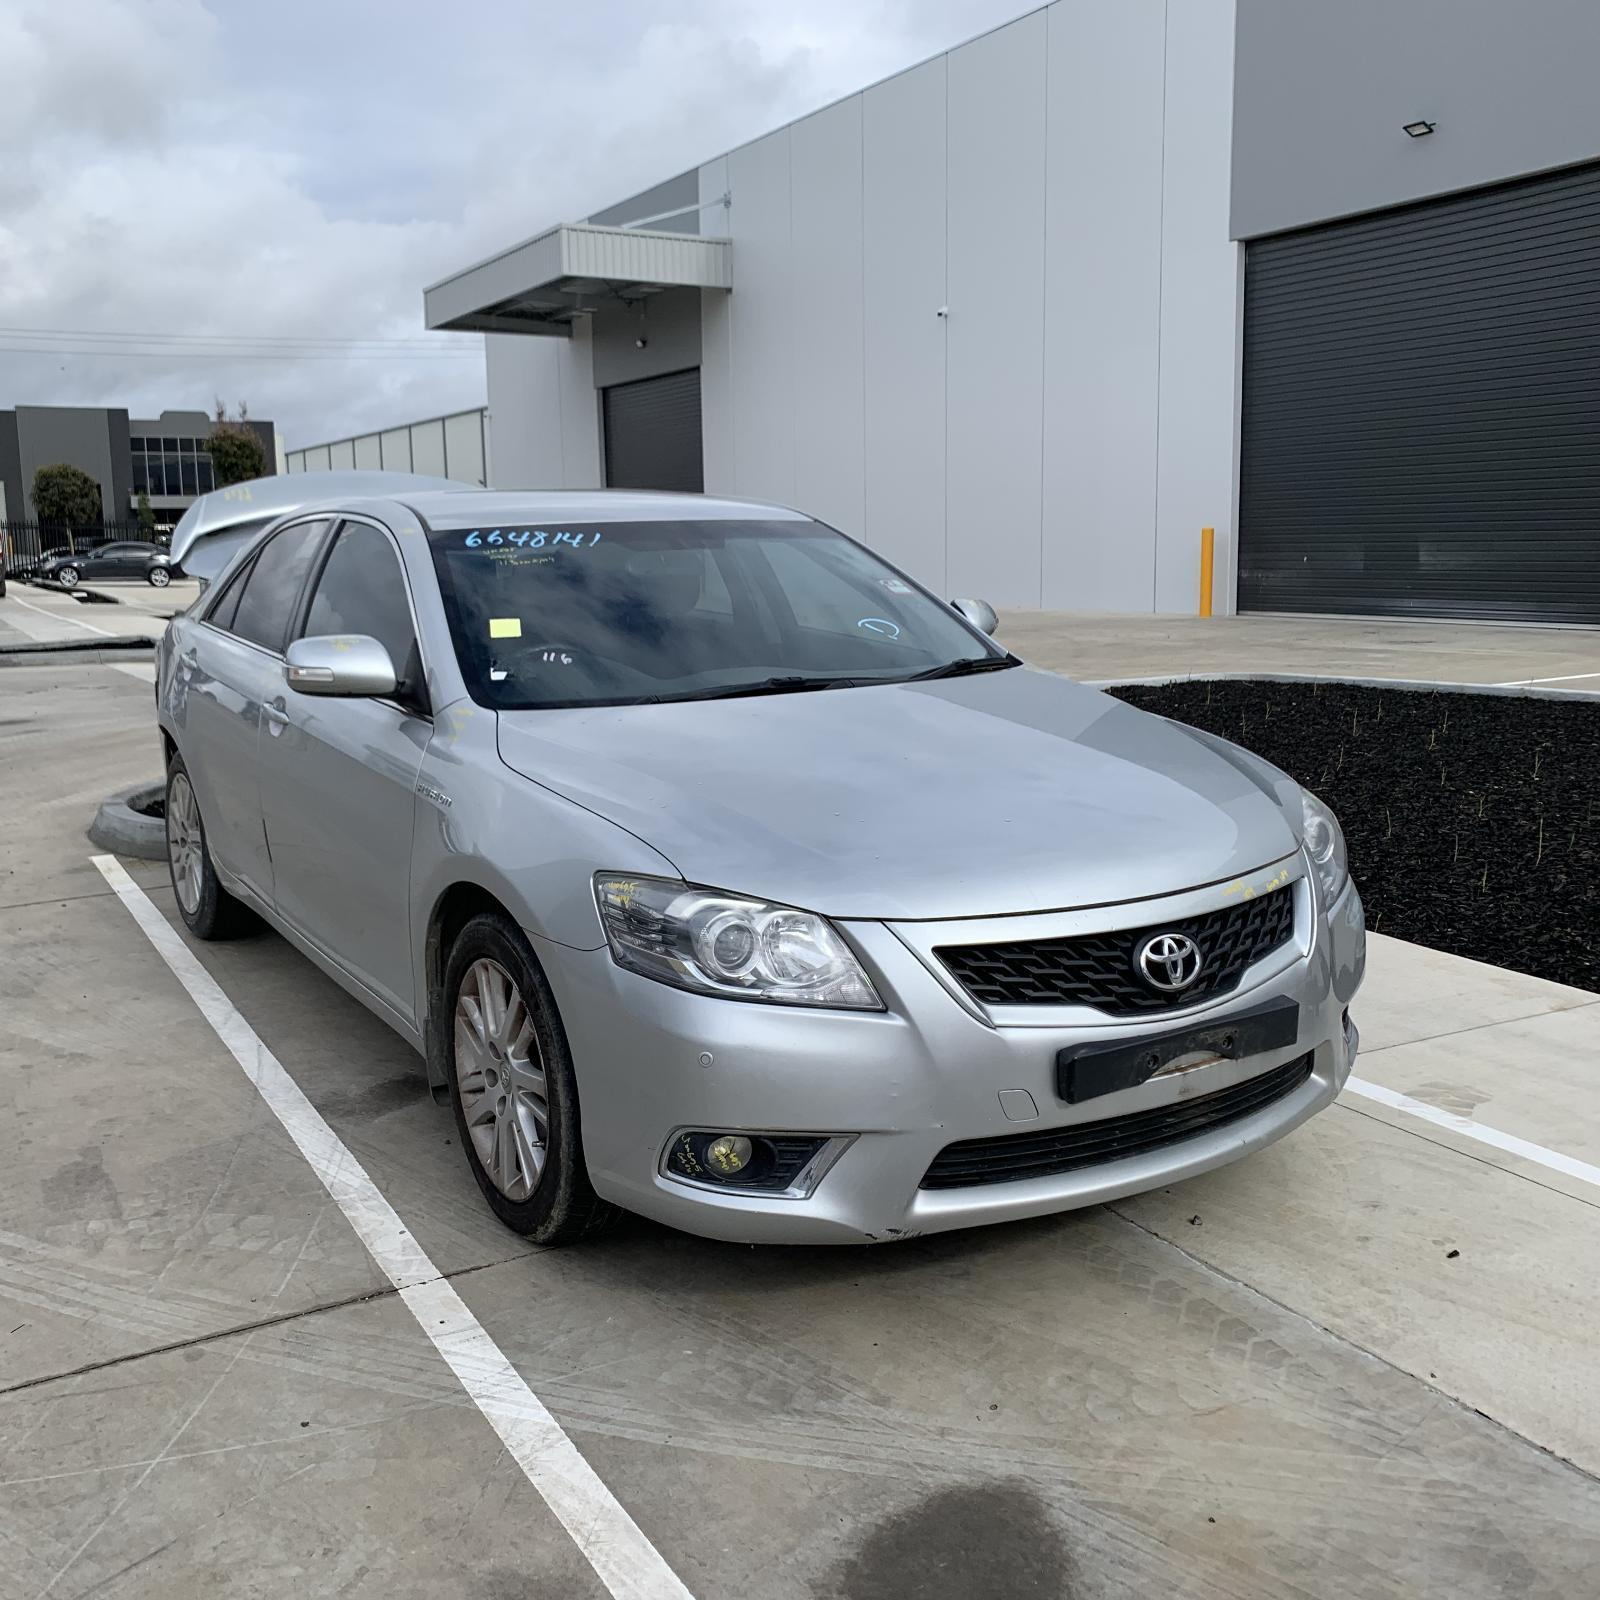 Toyota AURION TOURING 2GR-FE 3.5L Engine Automatic FWD Transmission 09/09 - 03/12